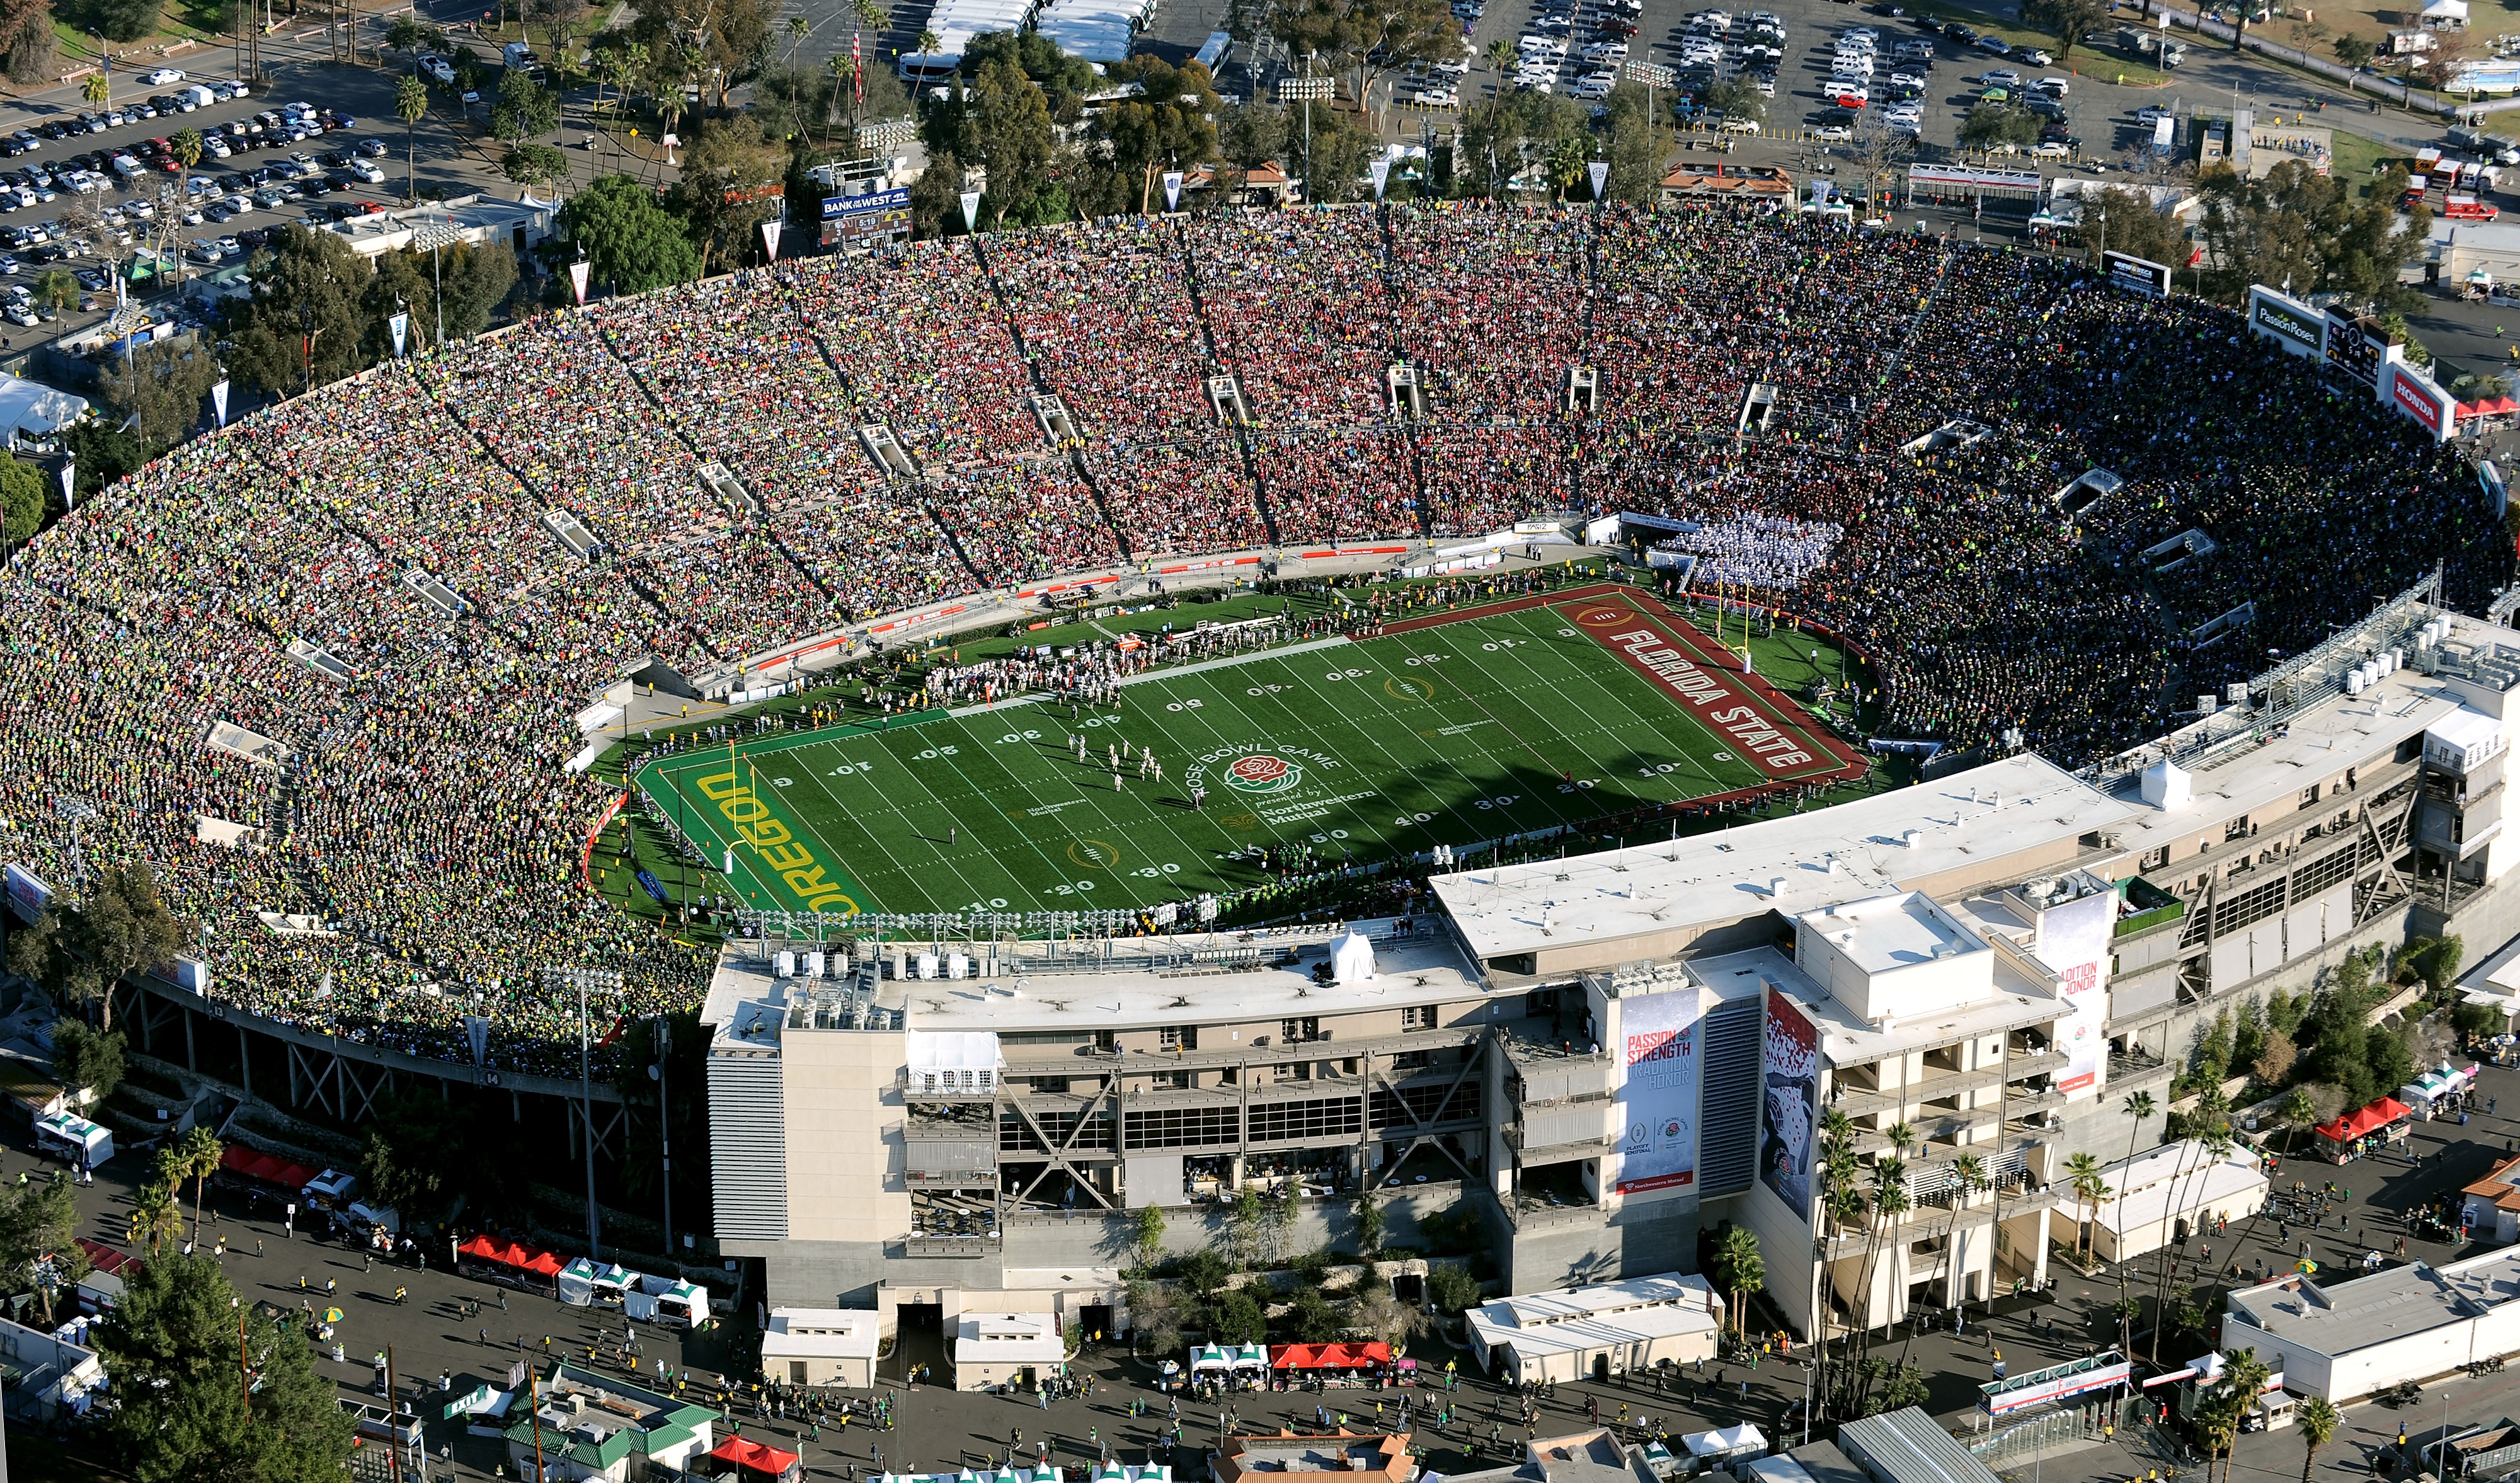 An aerial view of the Rose Bowl Stadium at the 2015 Rose Bowl.